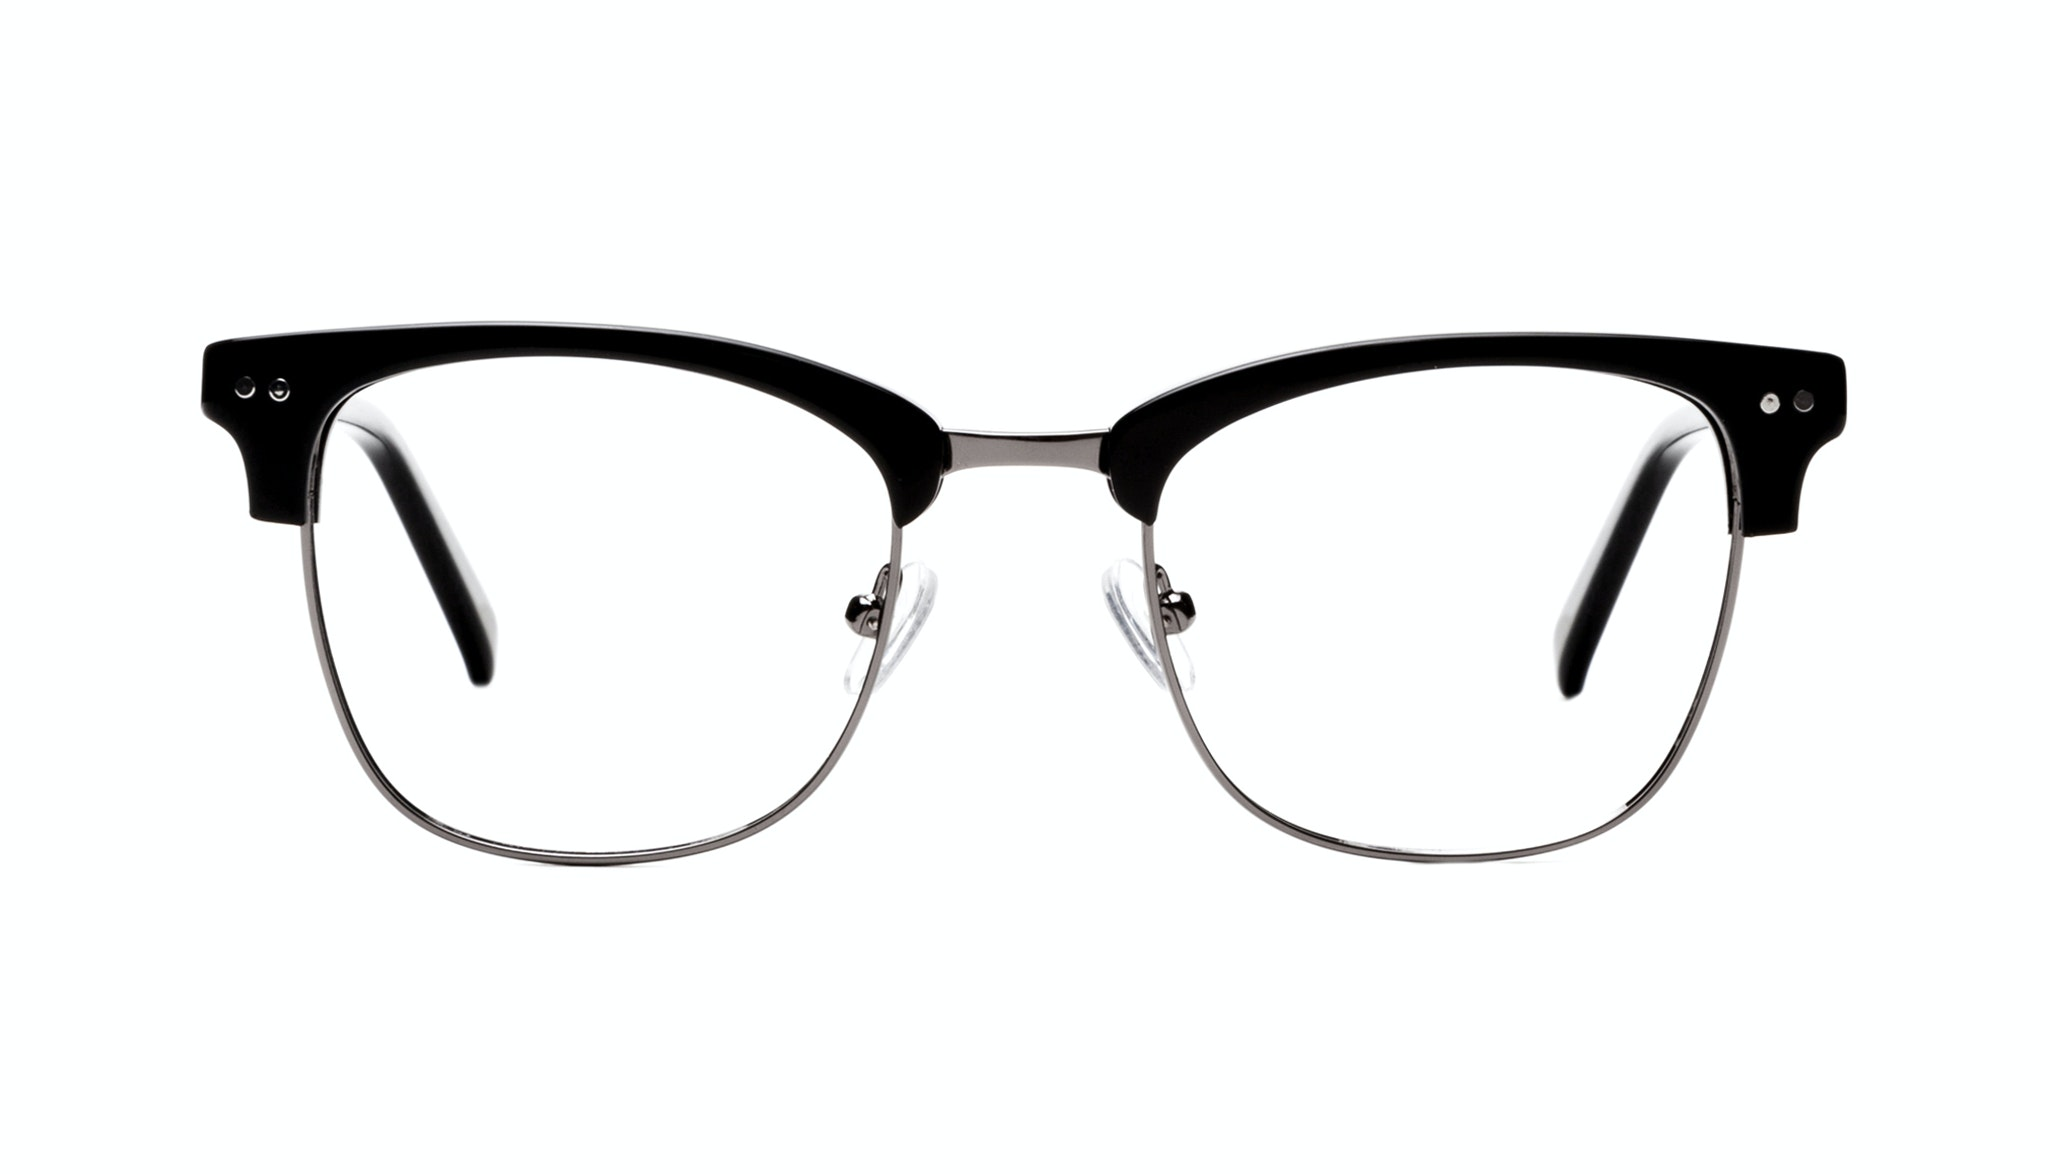 Affordable Fashion Glasses Square Eyeglasses Men Lift Onyx